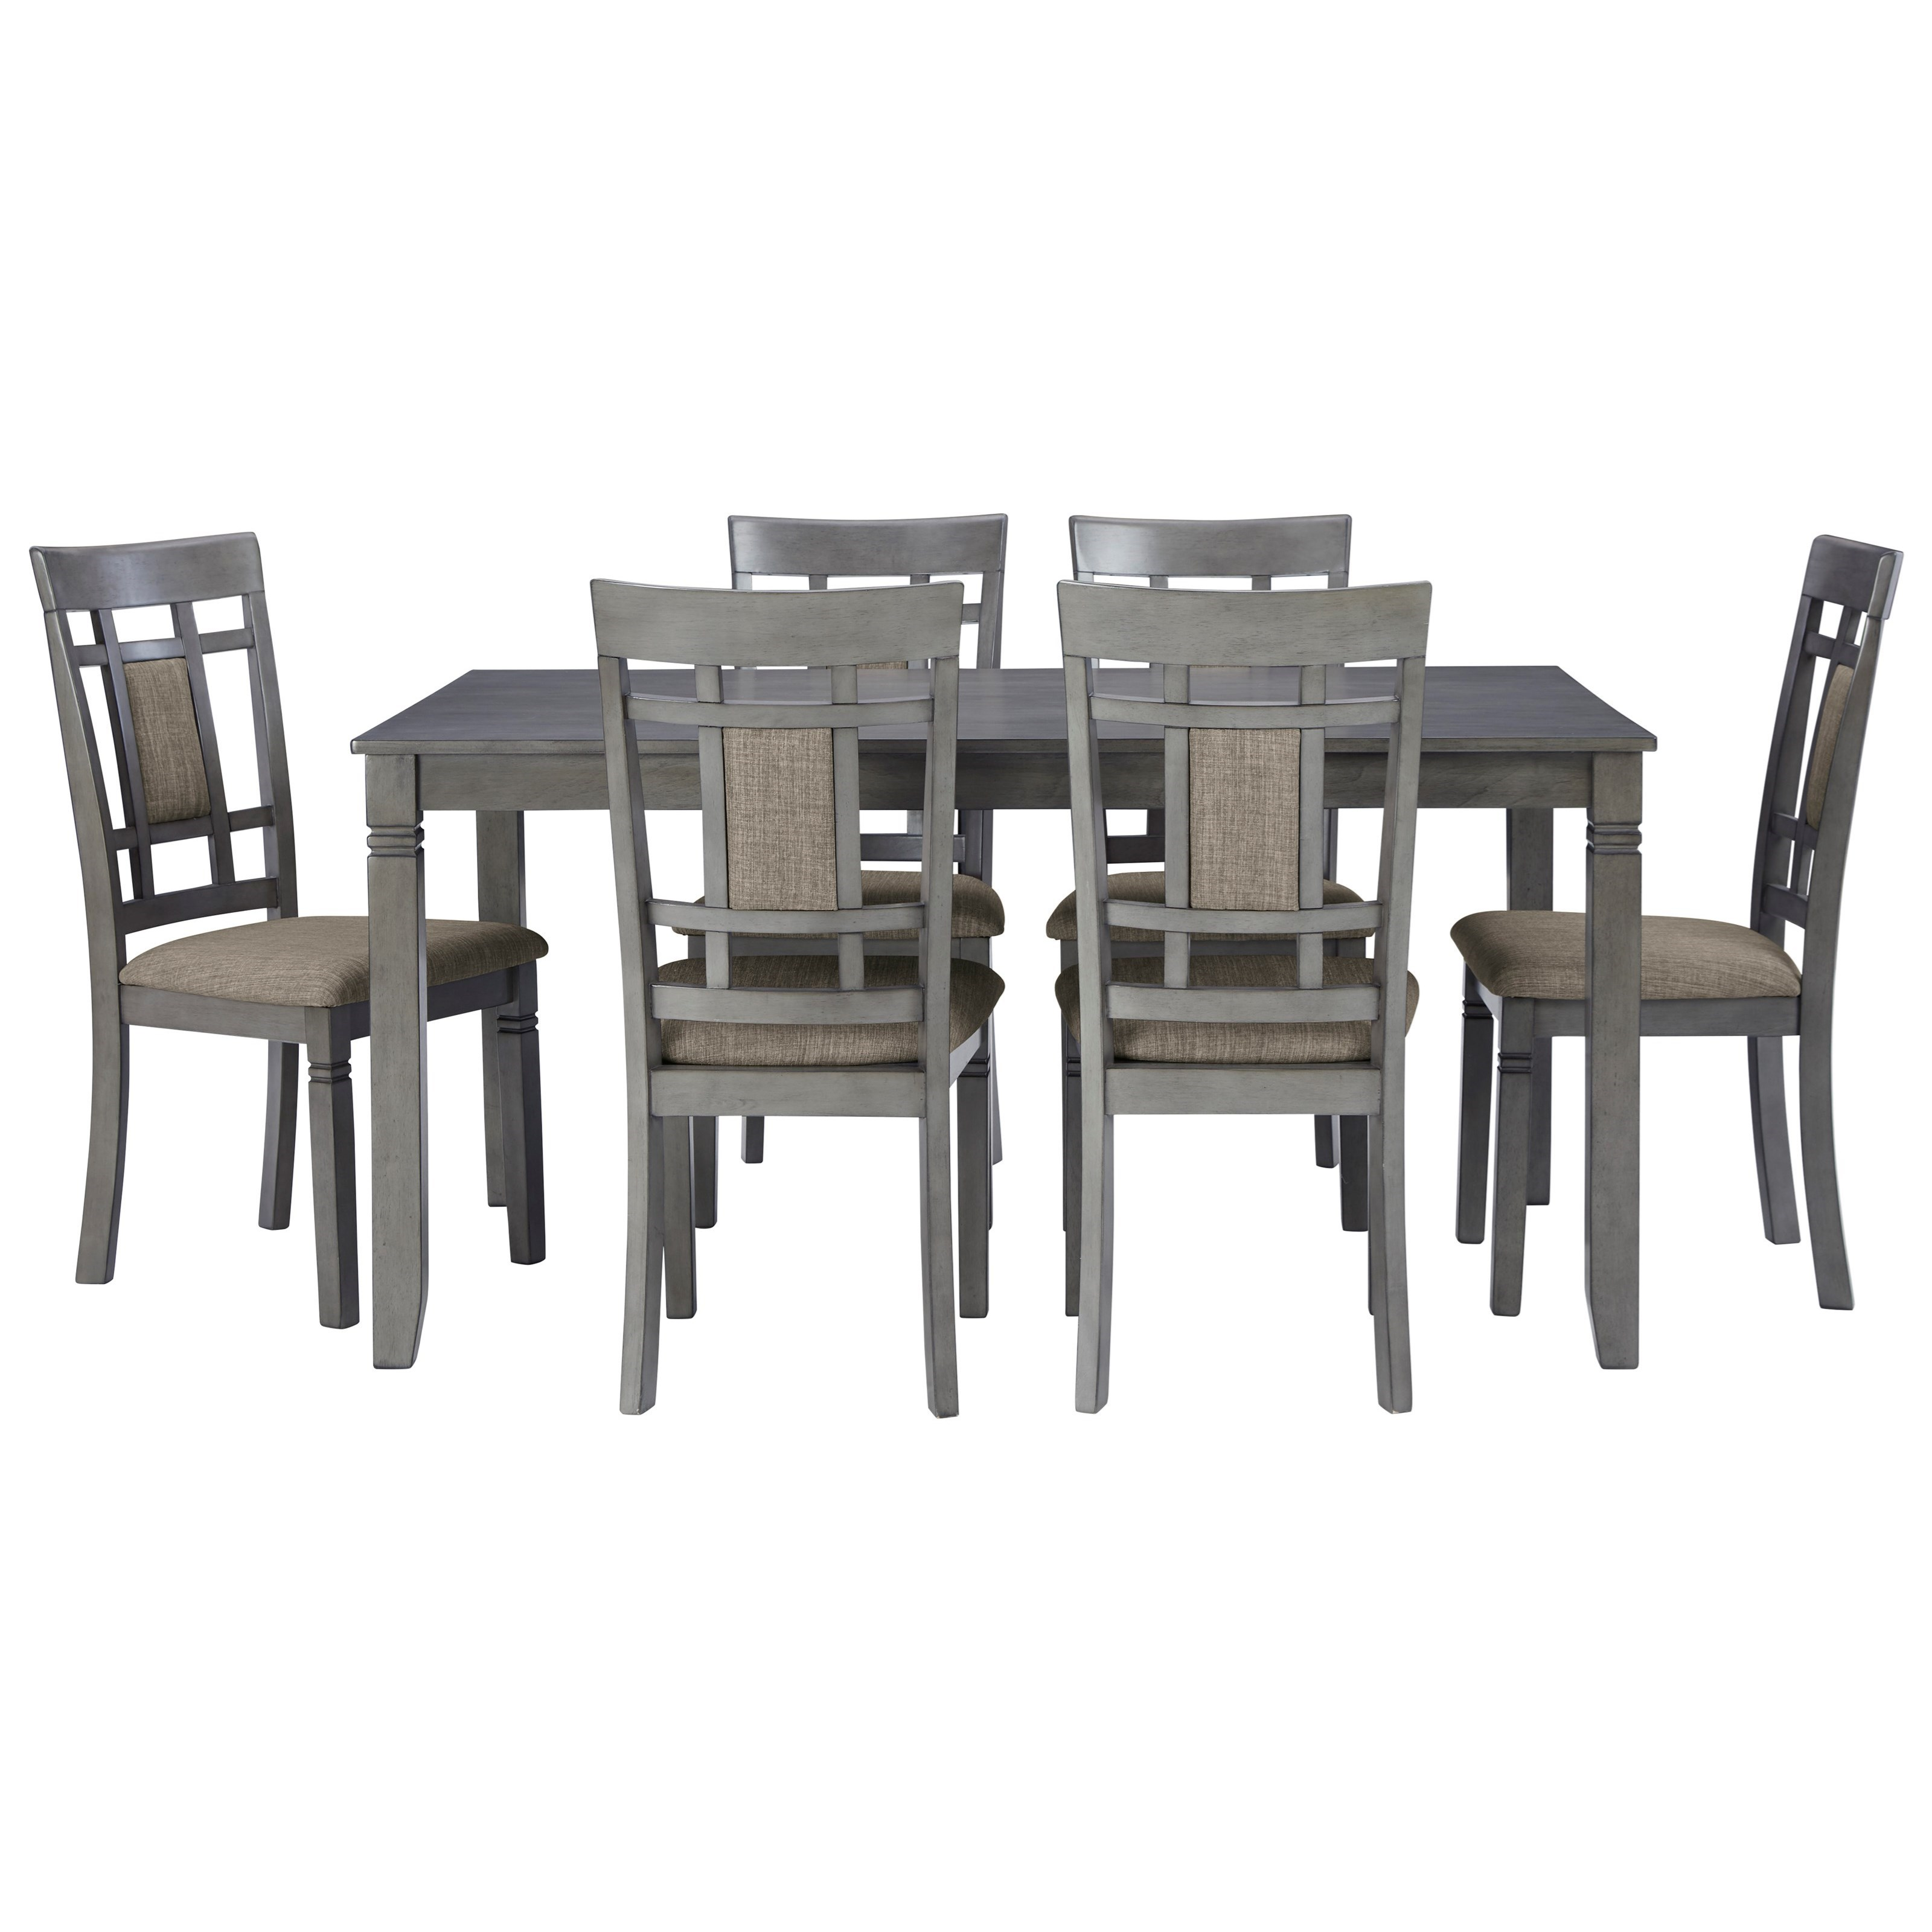 Jayemyer 7-Piece Dining Table and Chairs Set by Signature Design by Ashley at Suburban Furniture